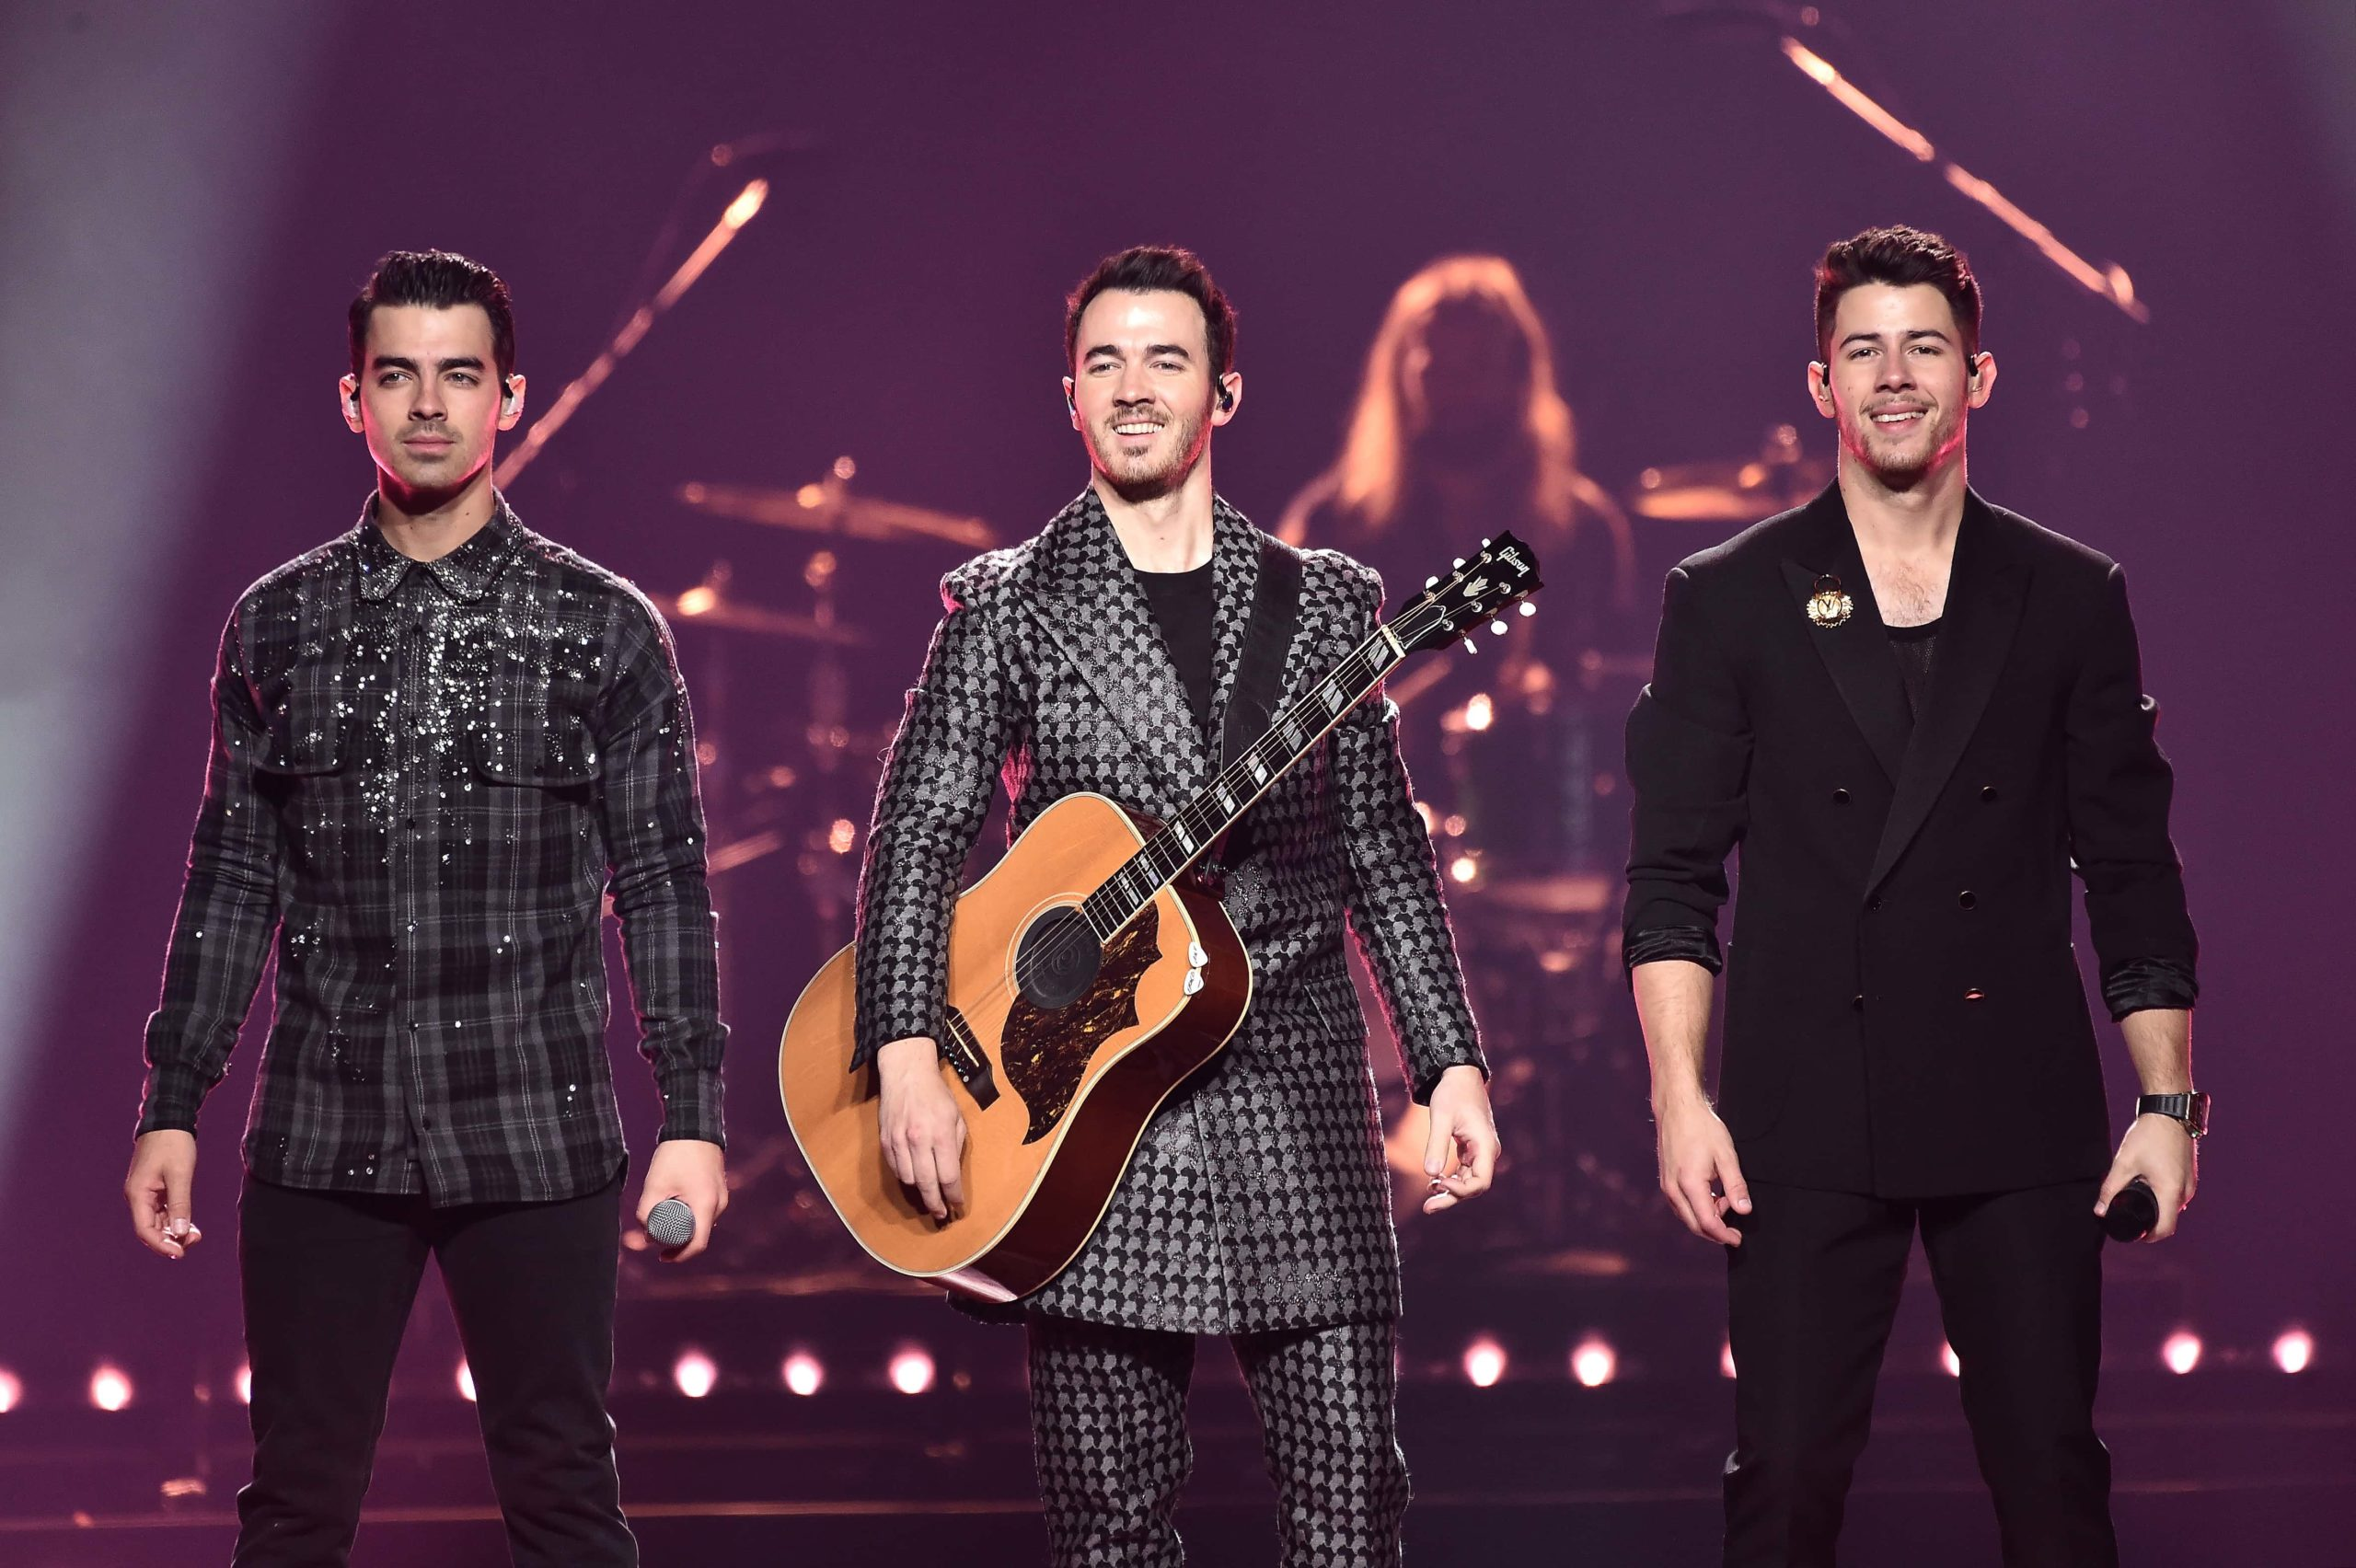 Jonas Brothers drop '5 Extra Minutes' and 'X' that includes Karol G, followers say they've the songs on repeat